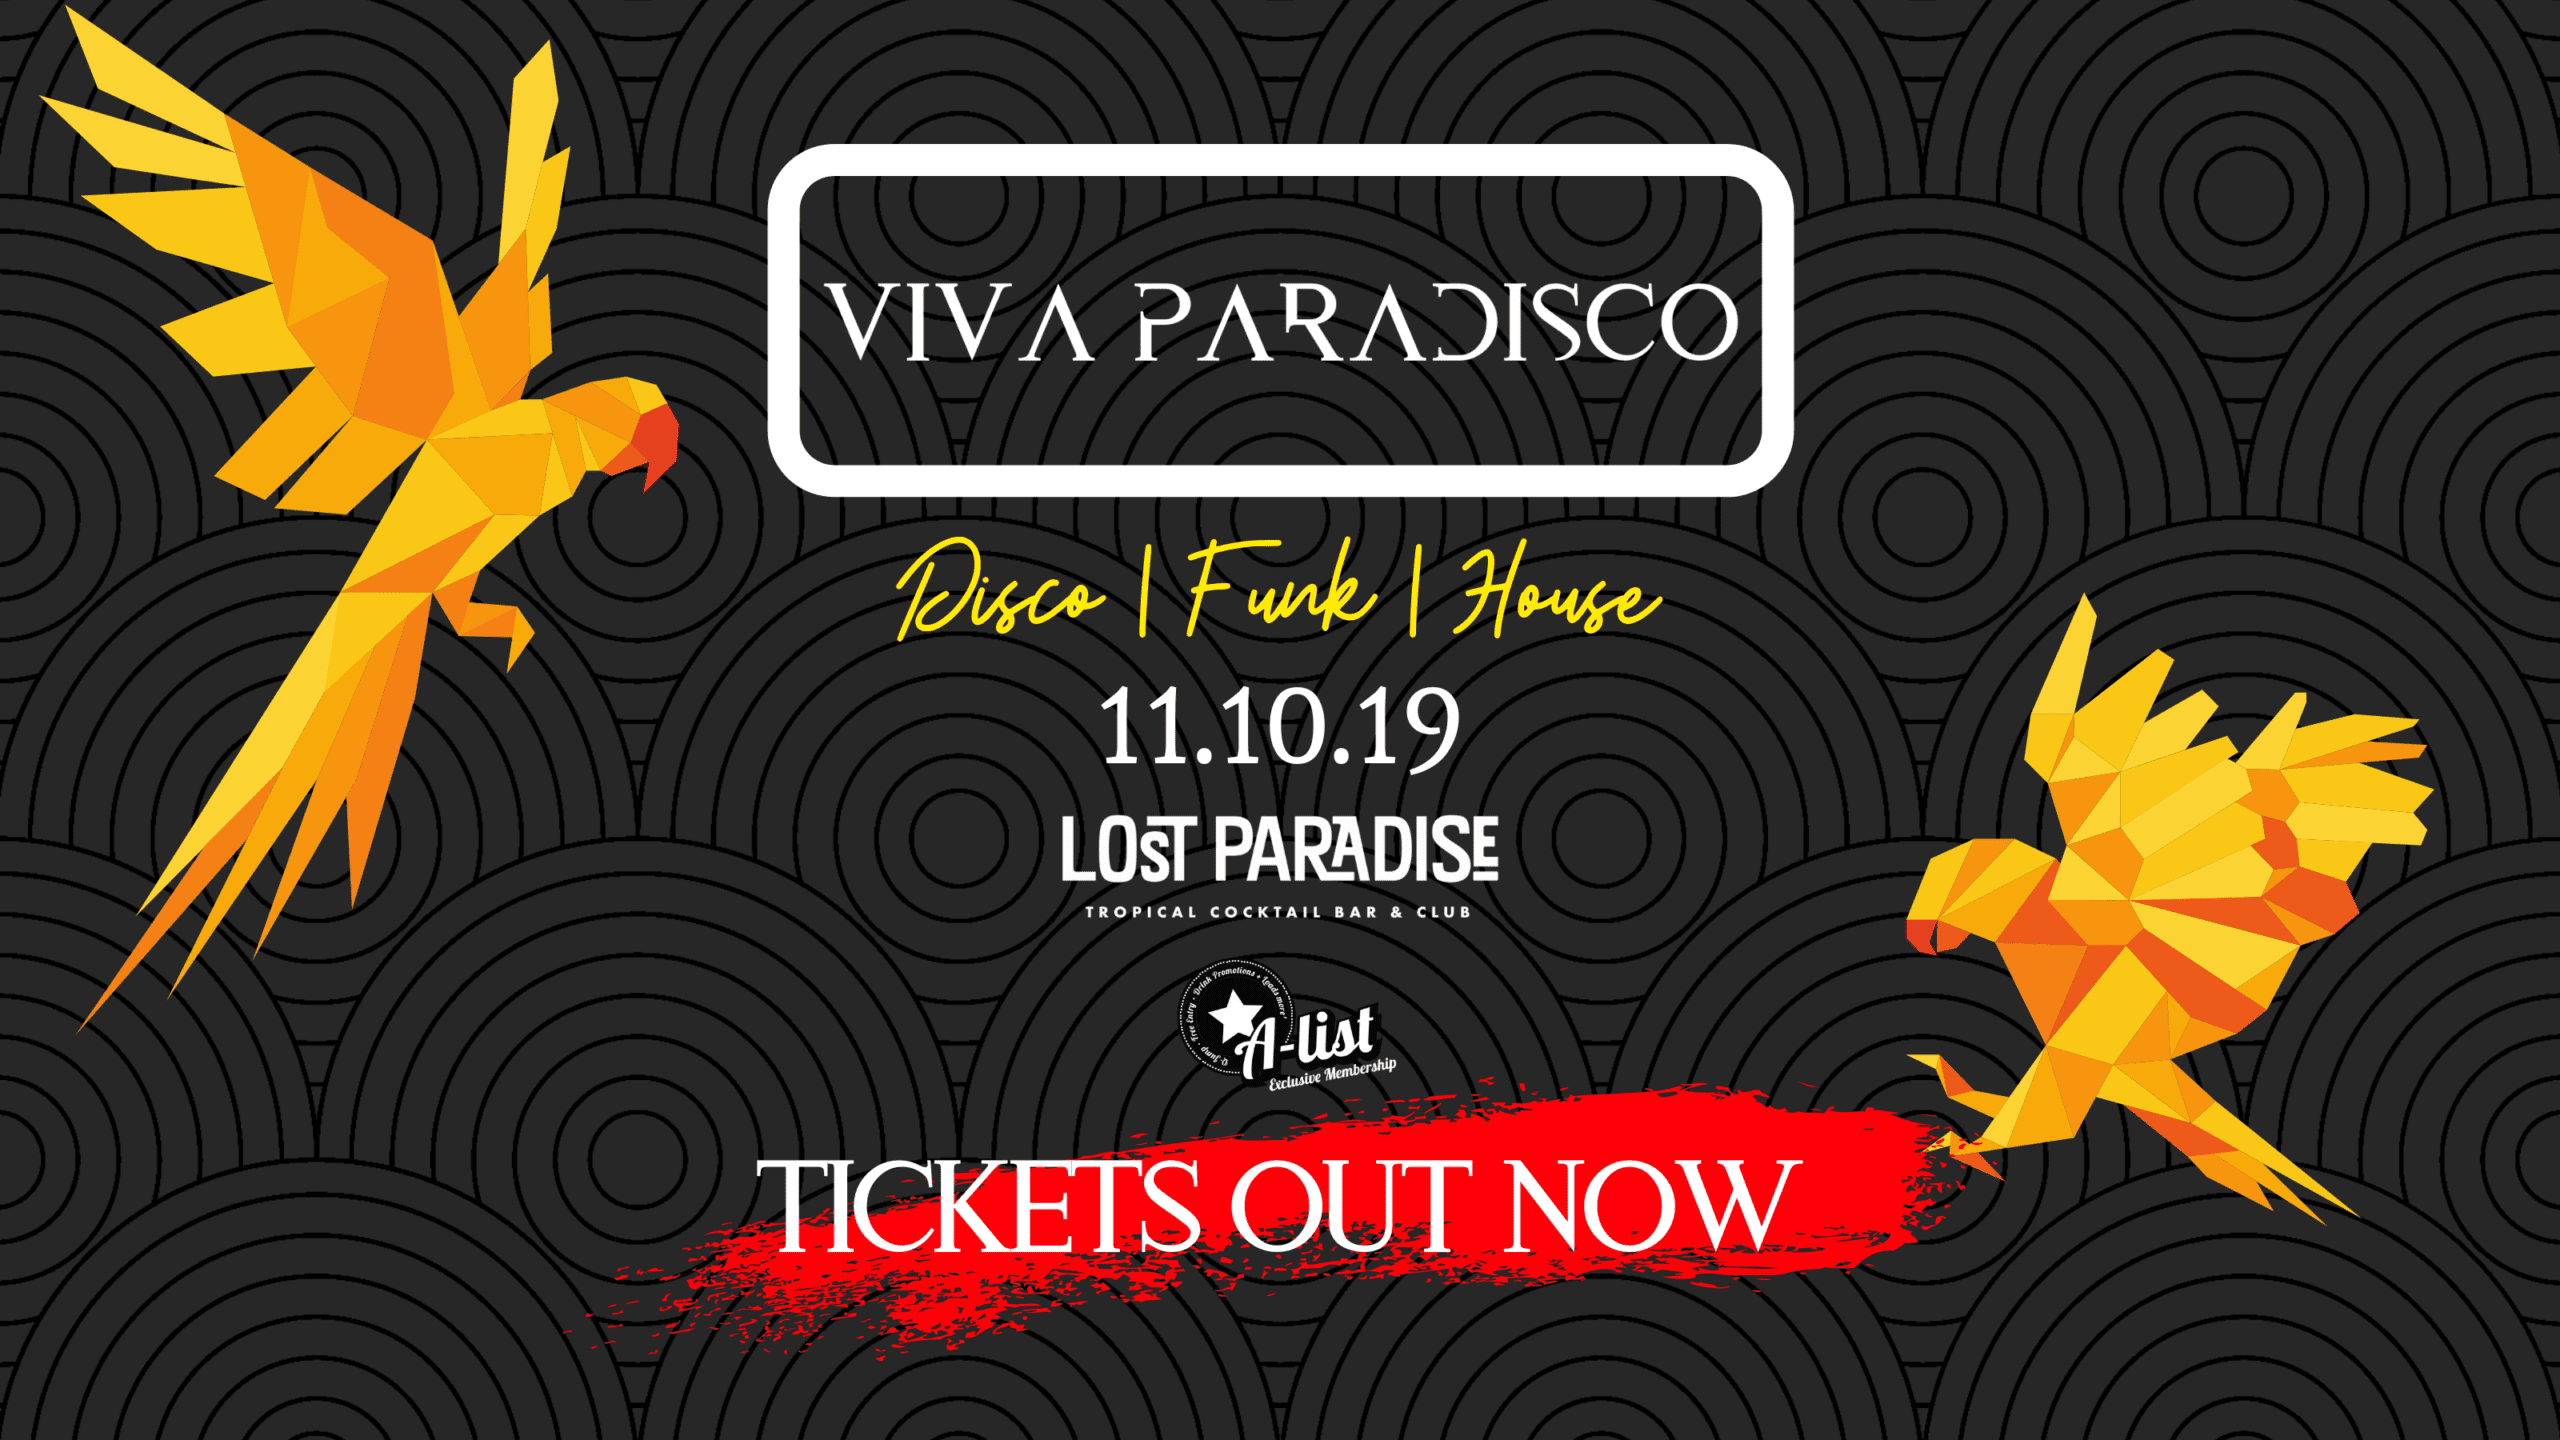 Viva Paradisco: Friday 11th October